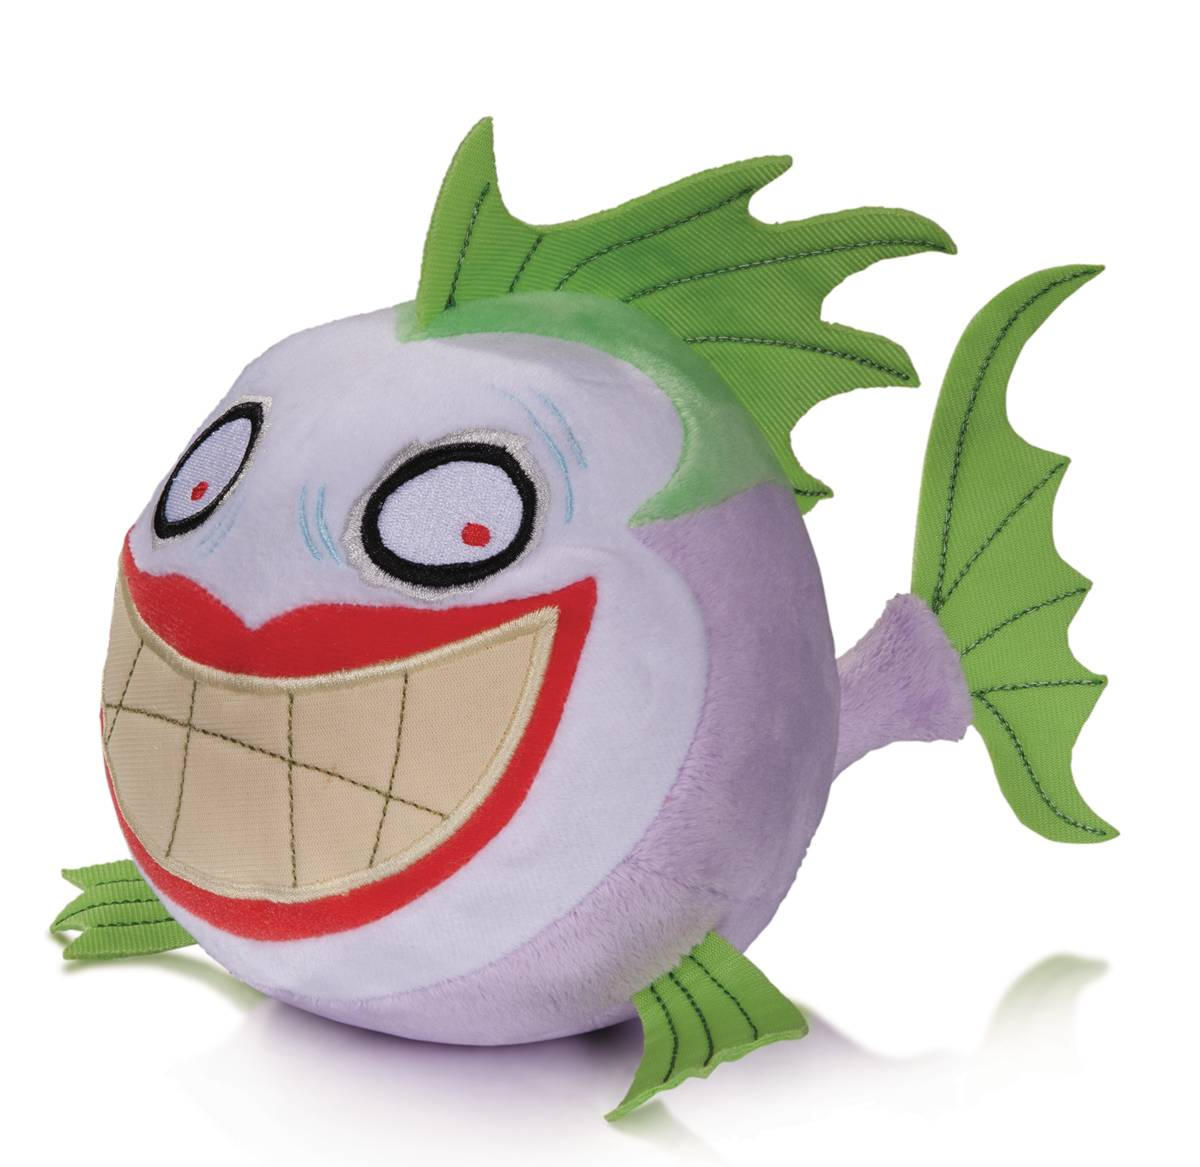 Joker Fish DC Comics Super Pets Plush